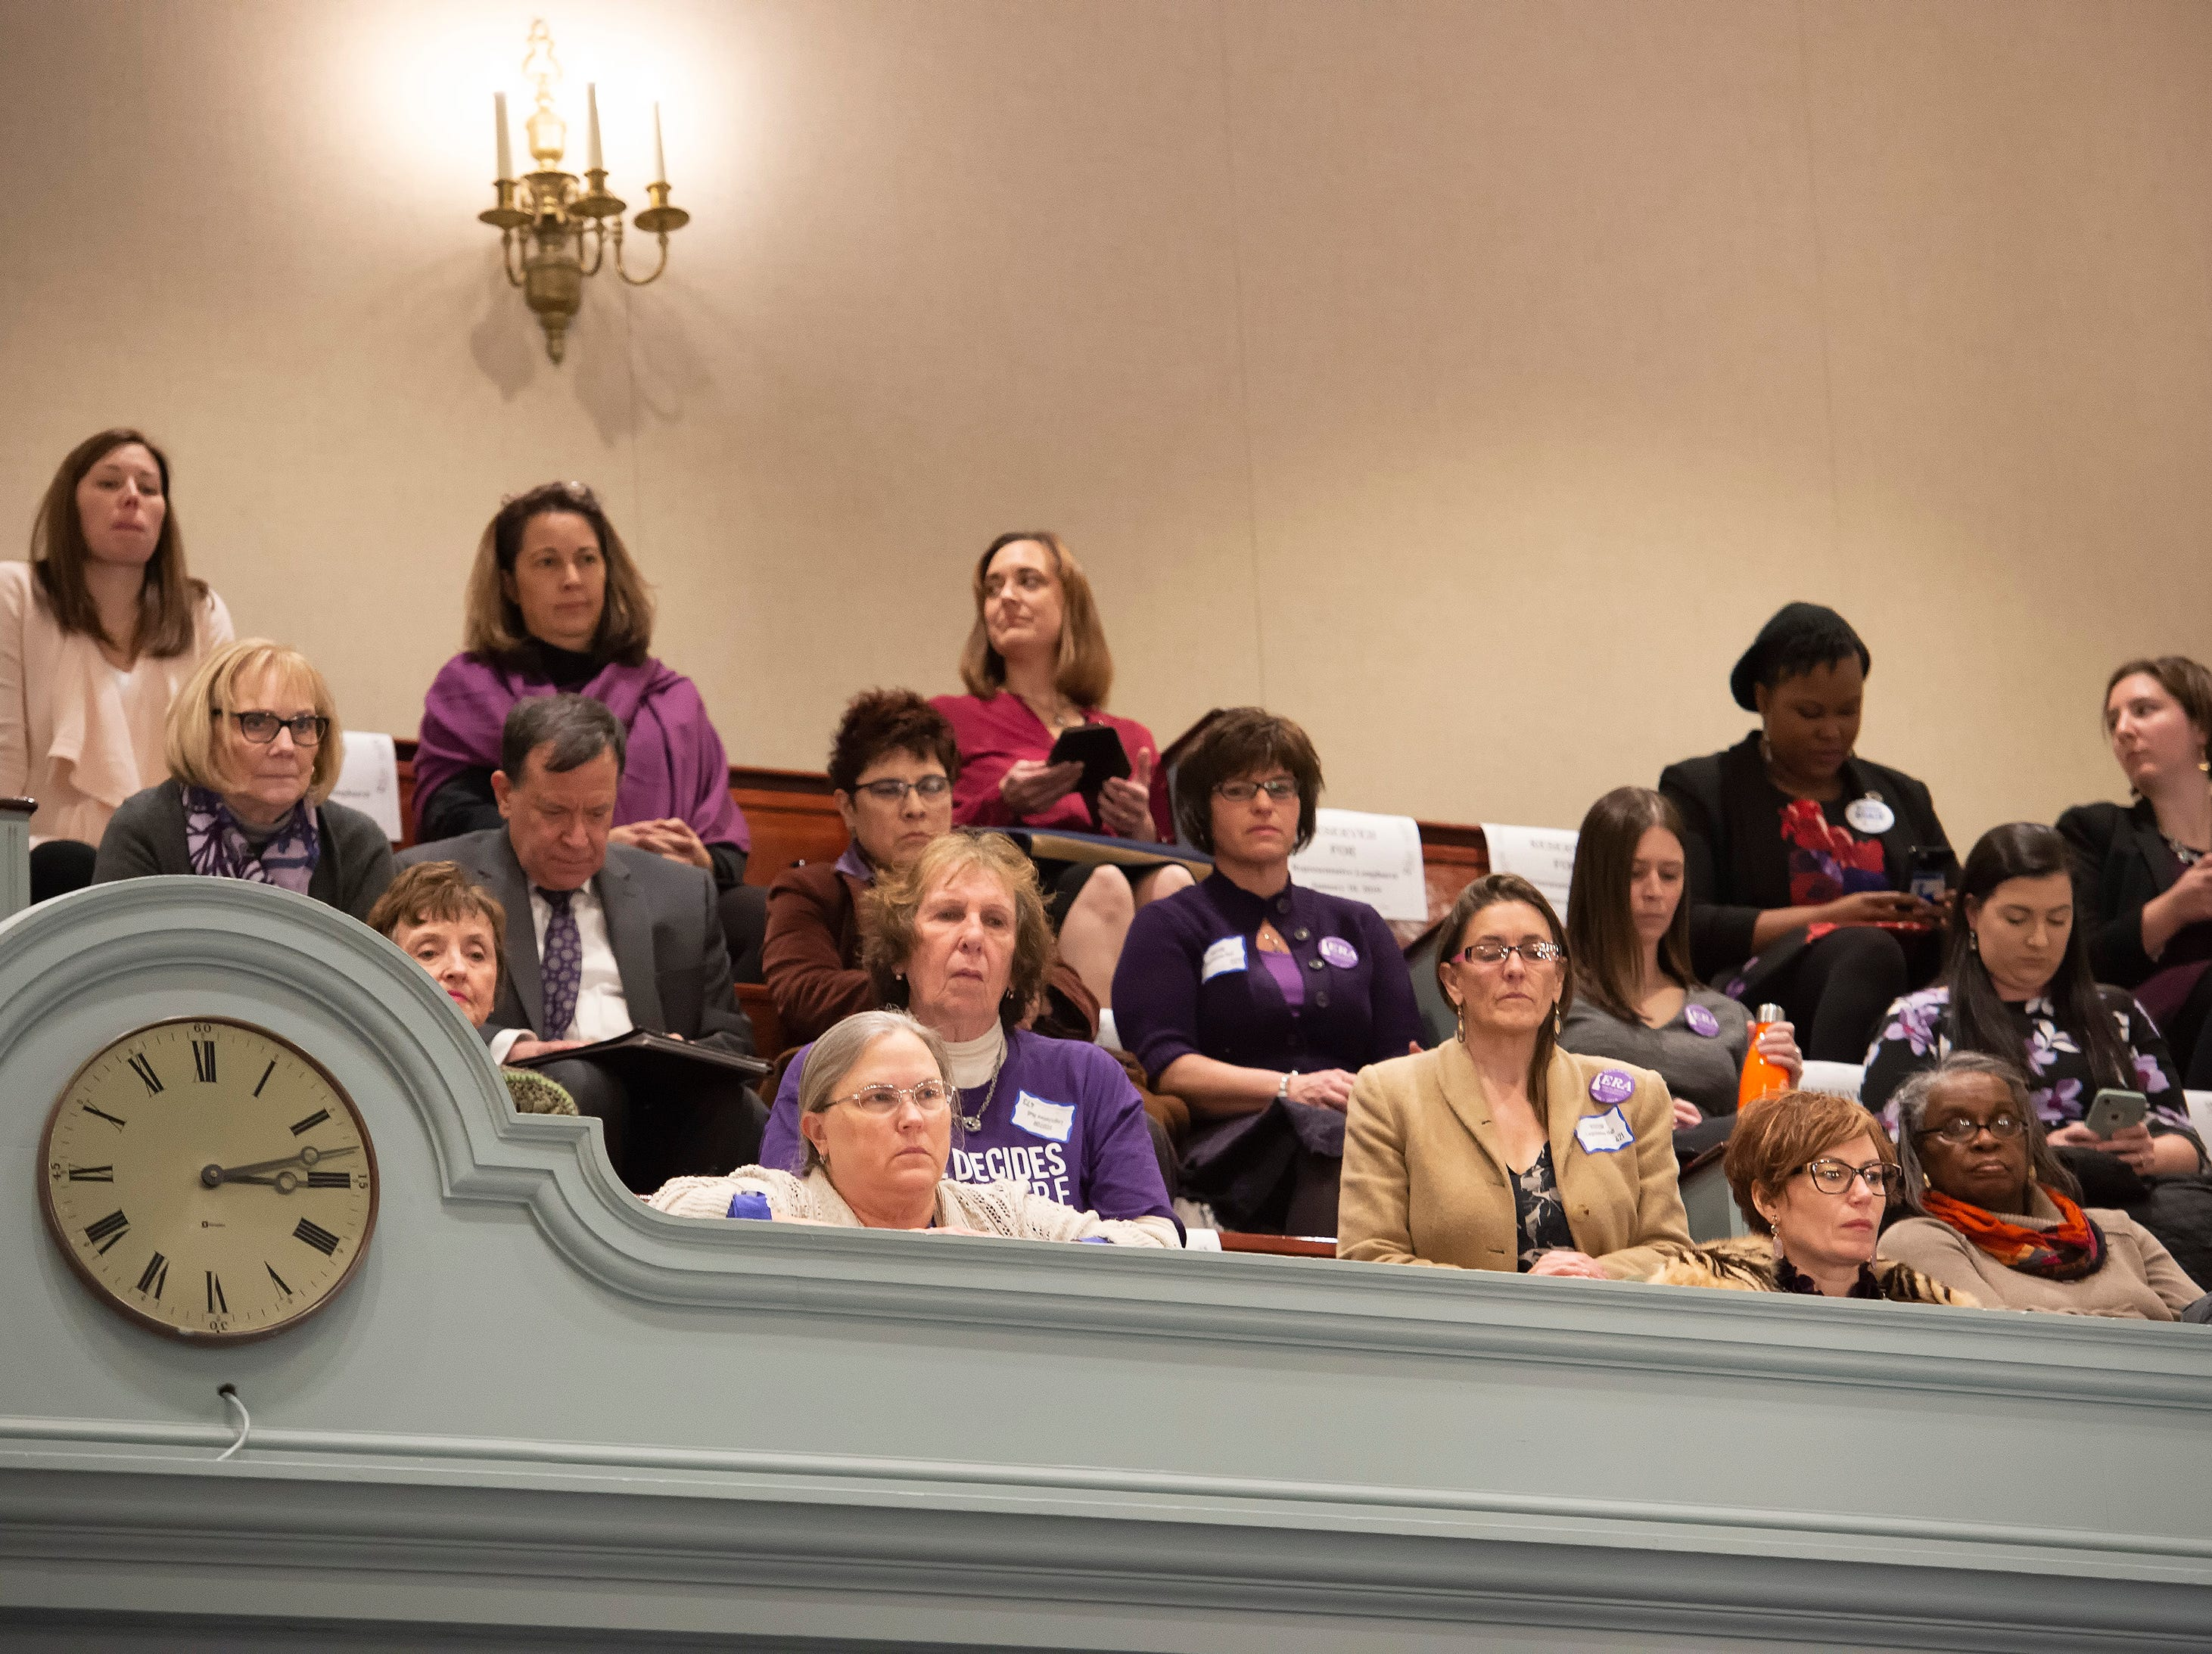 Visitors to Legislative Hall listen as House Majority Leader, Valerie Longhurst, D-Red Lion  introduces House Bill 1, equal rights amendment to the state constitution, during session at Legislative Hall in Dover.